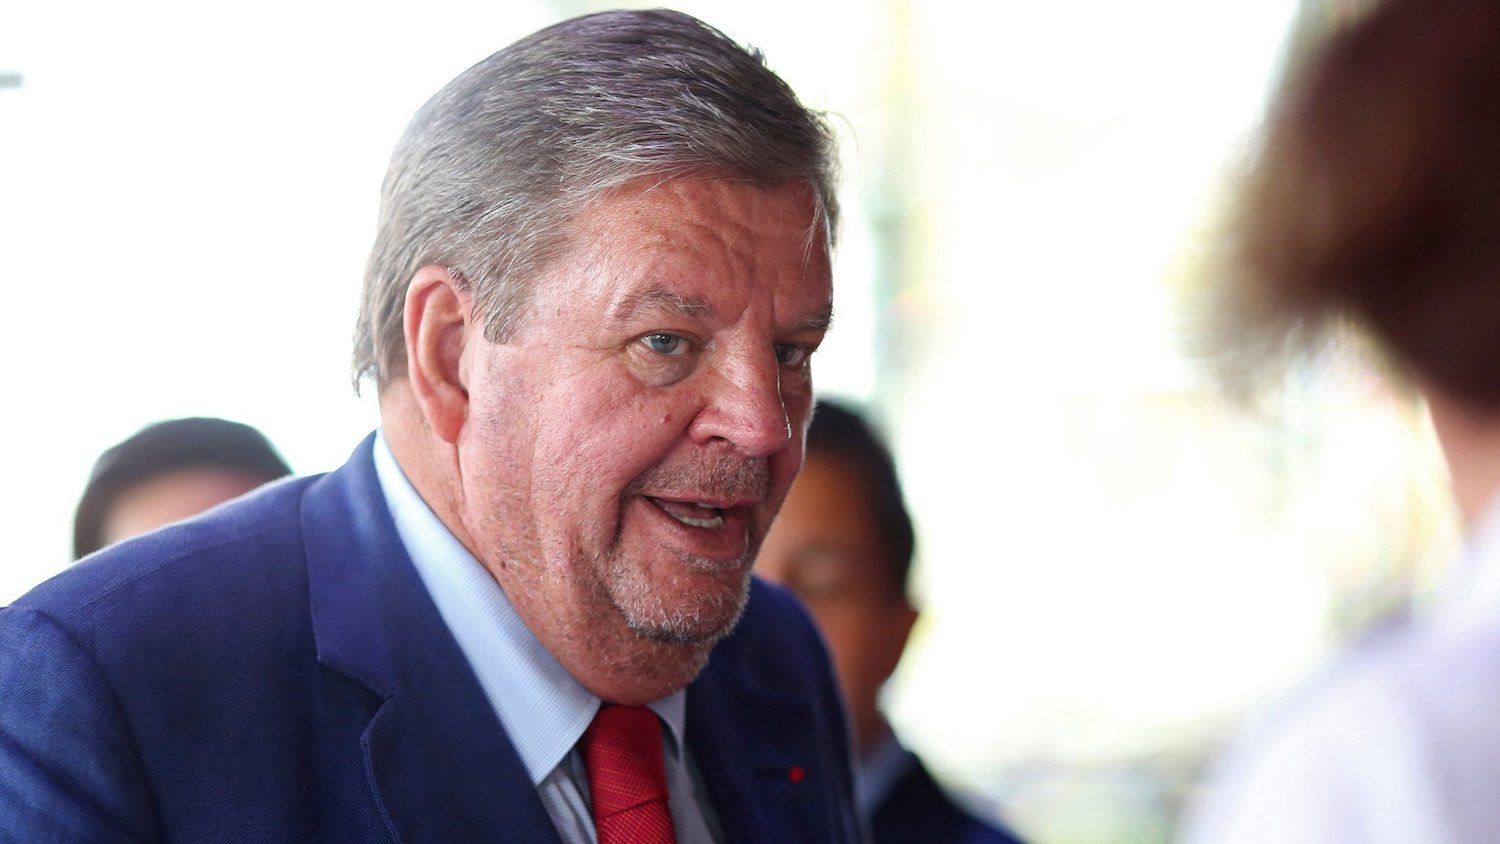 Johann Rupert, founder and chairman of Cie. Financiere Richemont SA